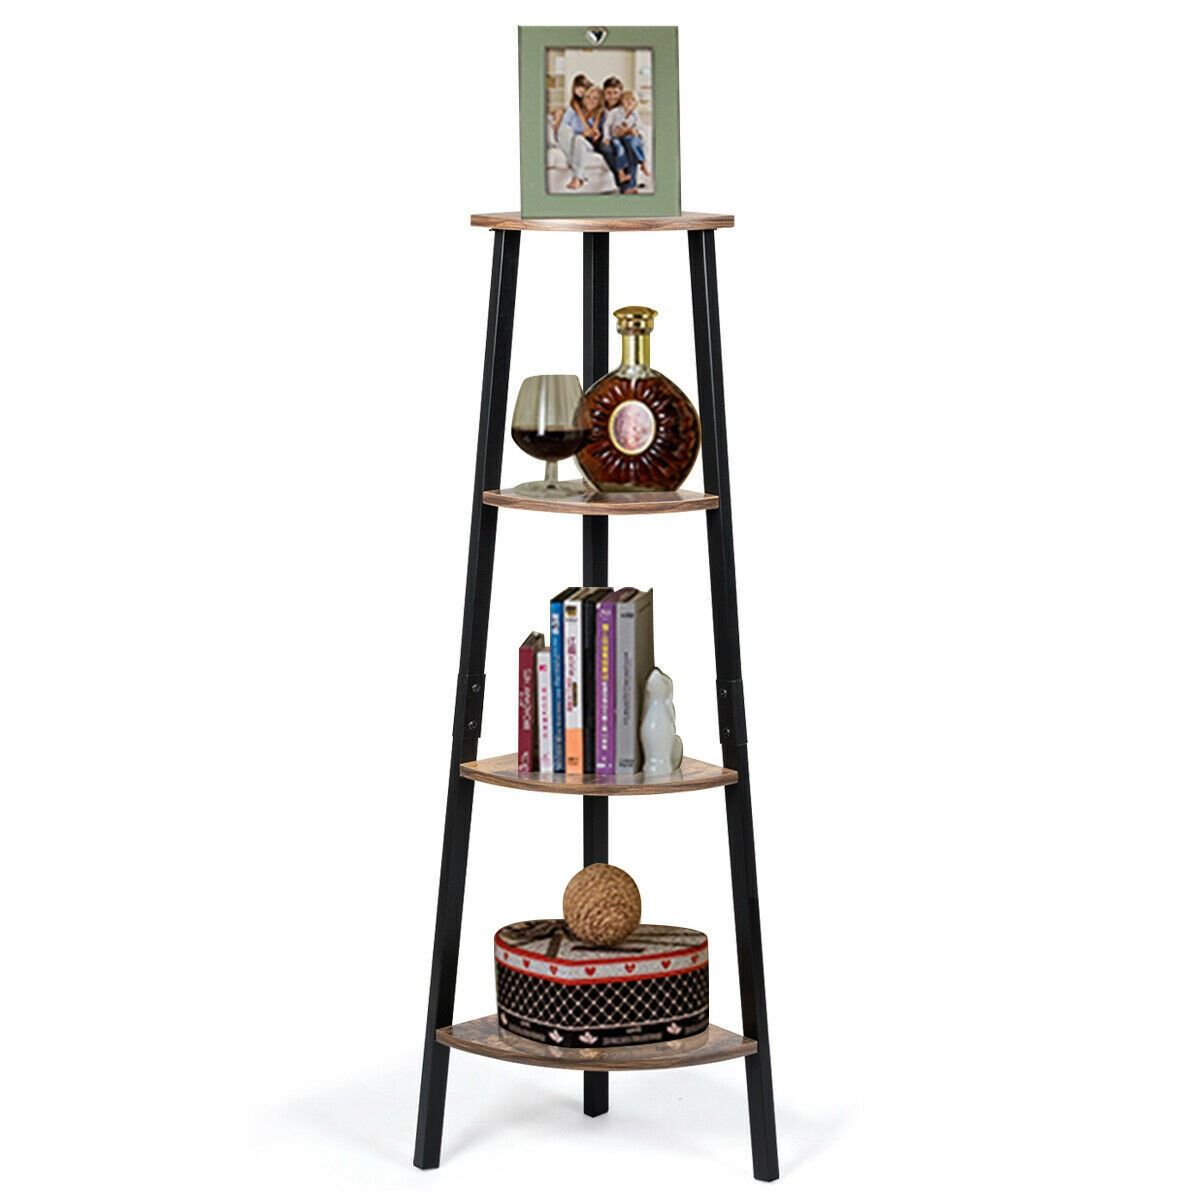 4 Tier Corner Shelf Metal Storage Rack Bookcase Plant Display Stand Metal Storage Racks Shelves Corner Shelves